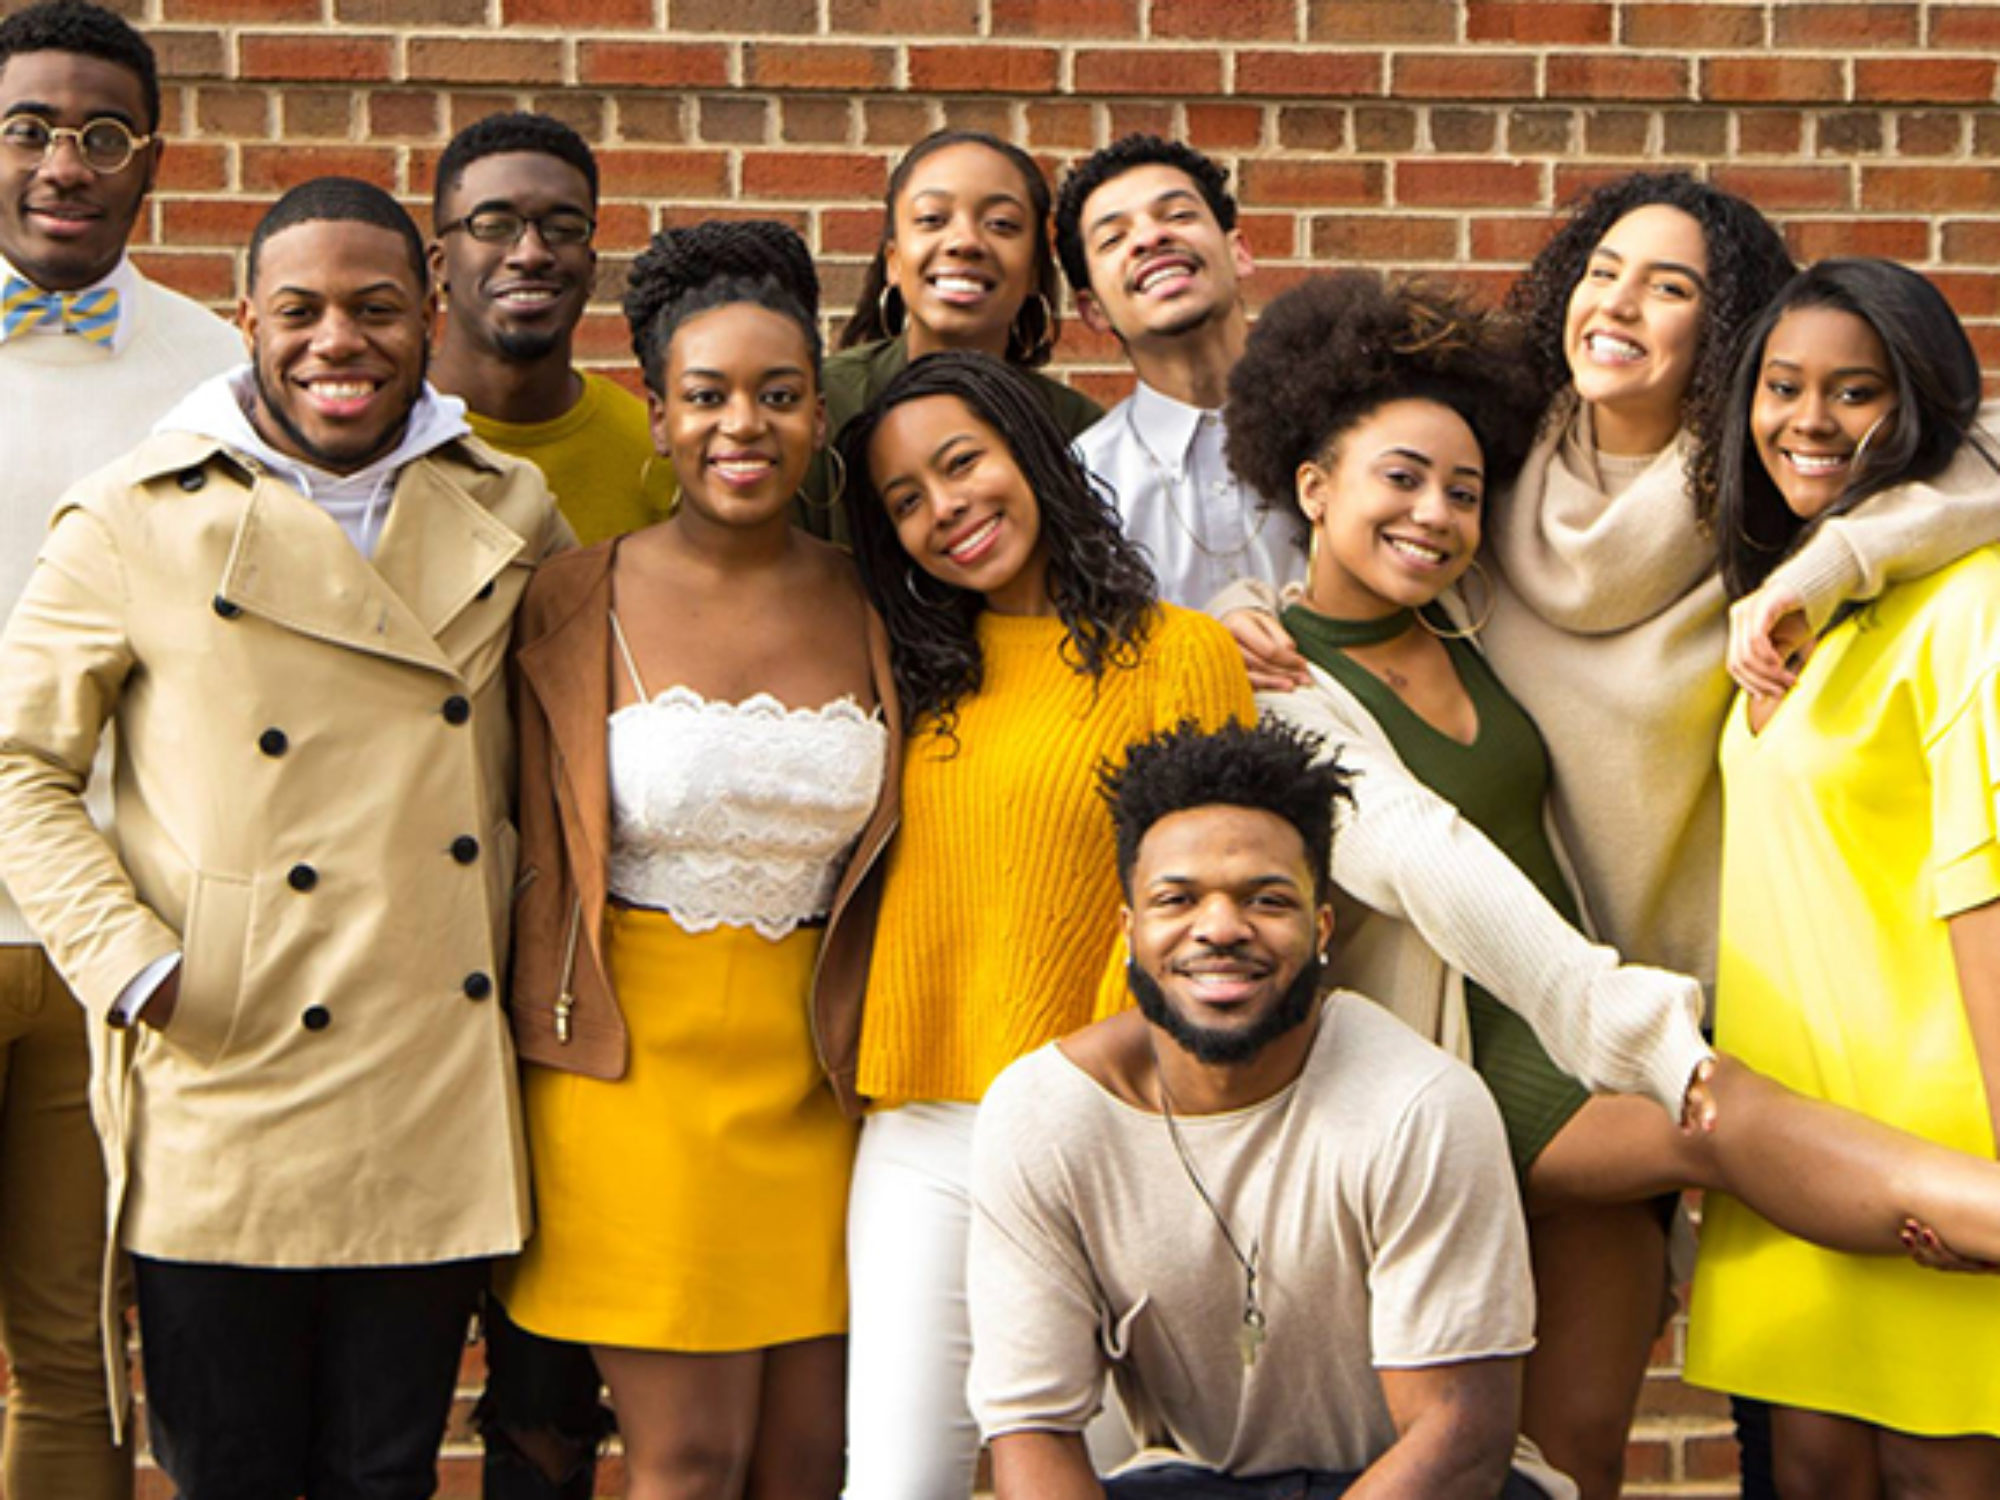 Members of Black Student Alliance smiling in front 的 a brick wall.